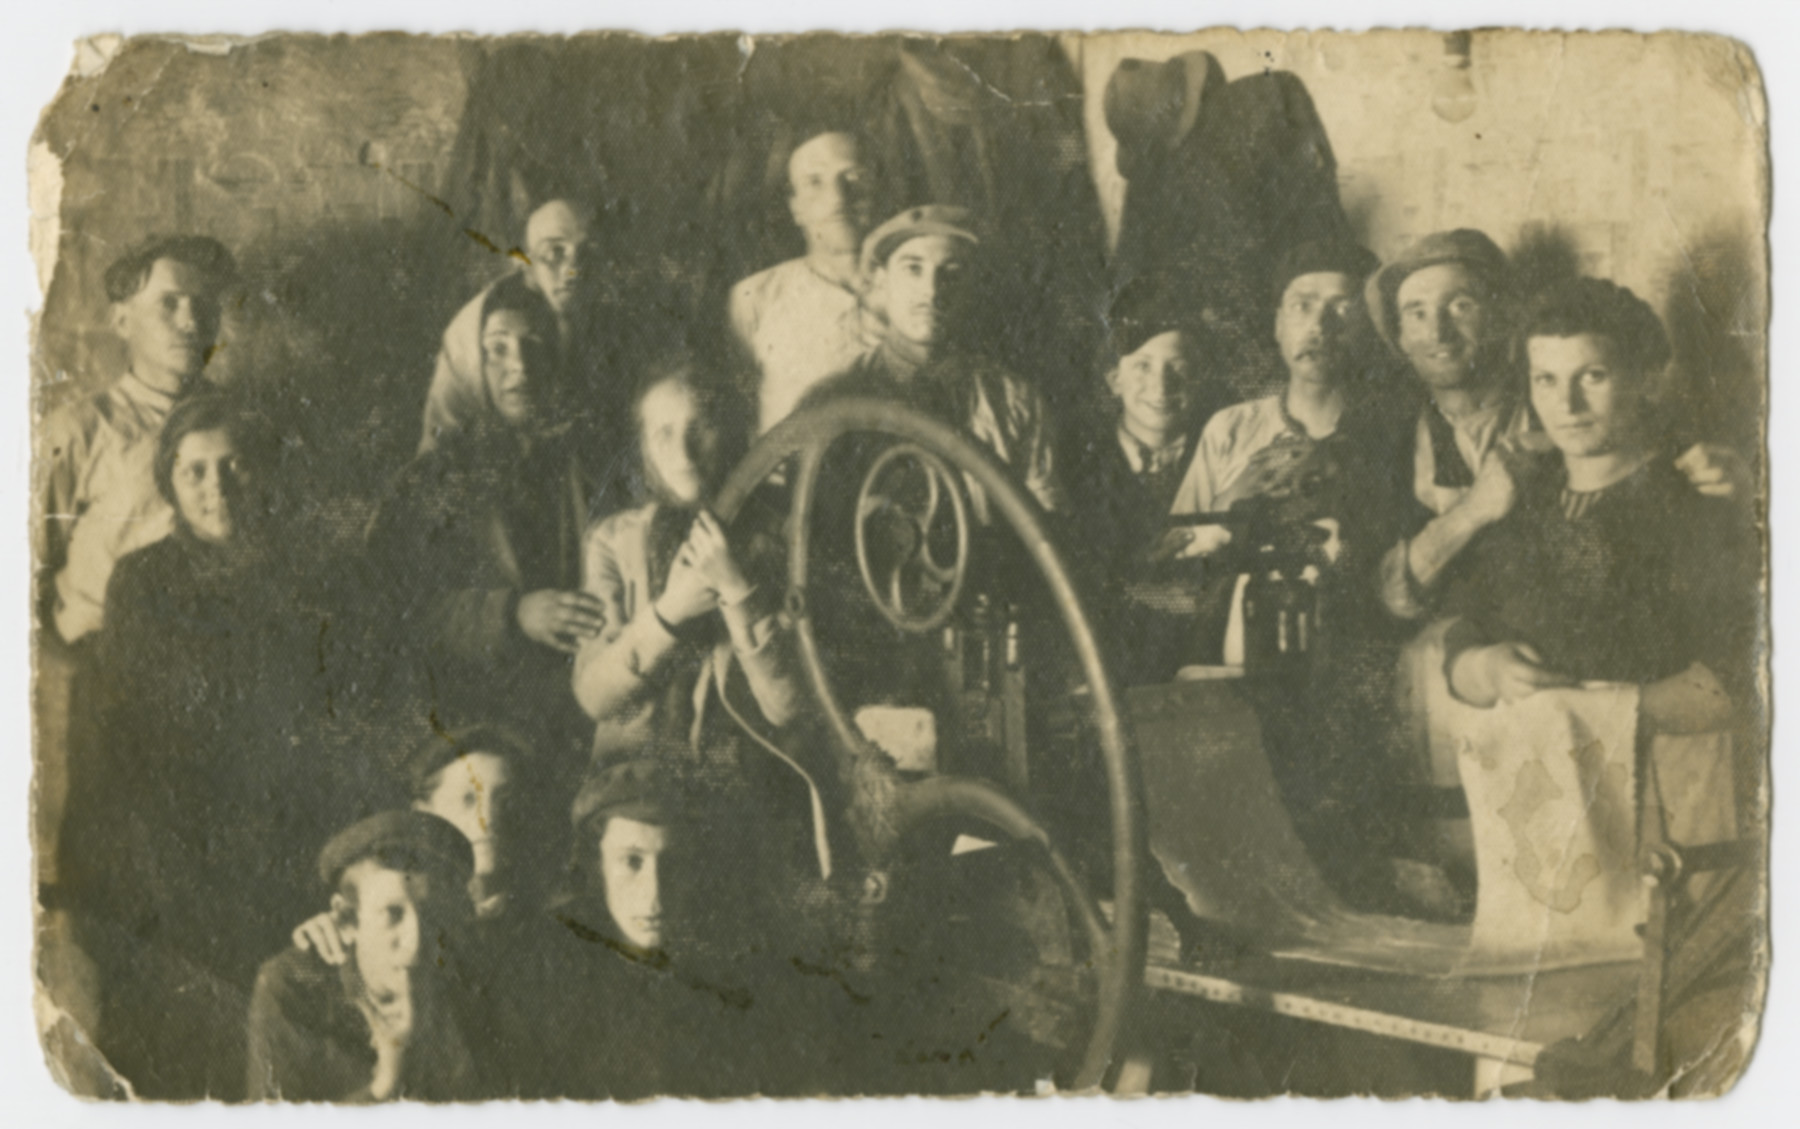 Group portrait of workers in a matzah factory.  Sandor Grunspan (uncle of the donor) is pictured in the center.  He died one week after liberation.